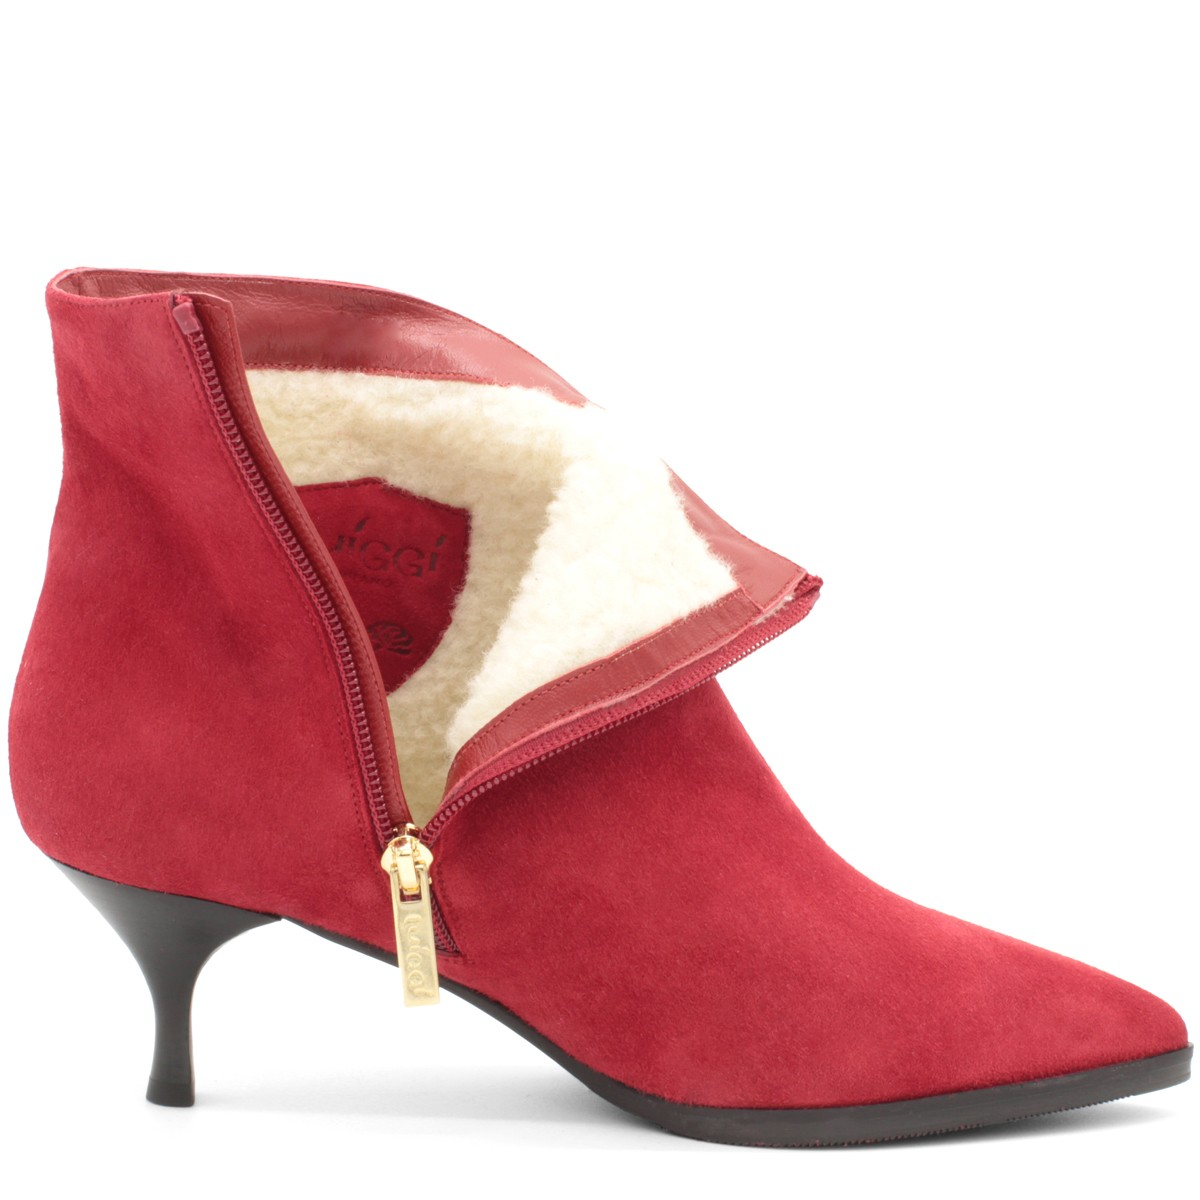 RED SUEDE STYLISH WOOL FUR LINED ANKLE BOOTS